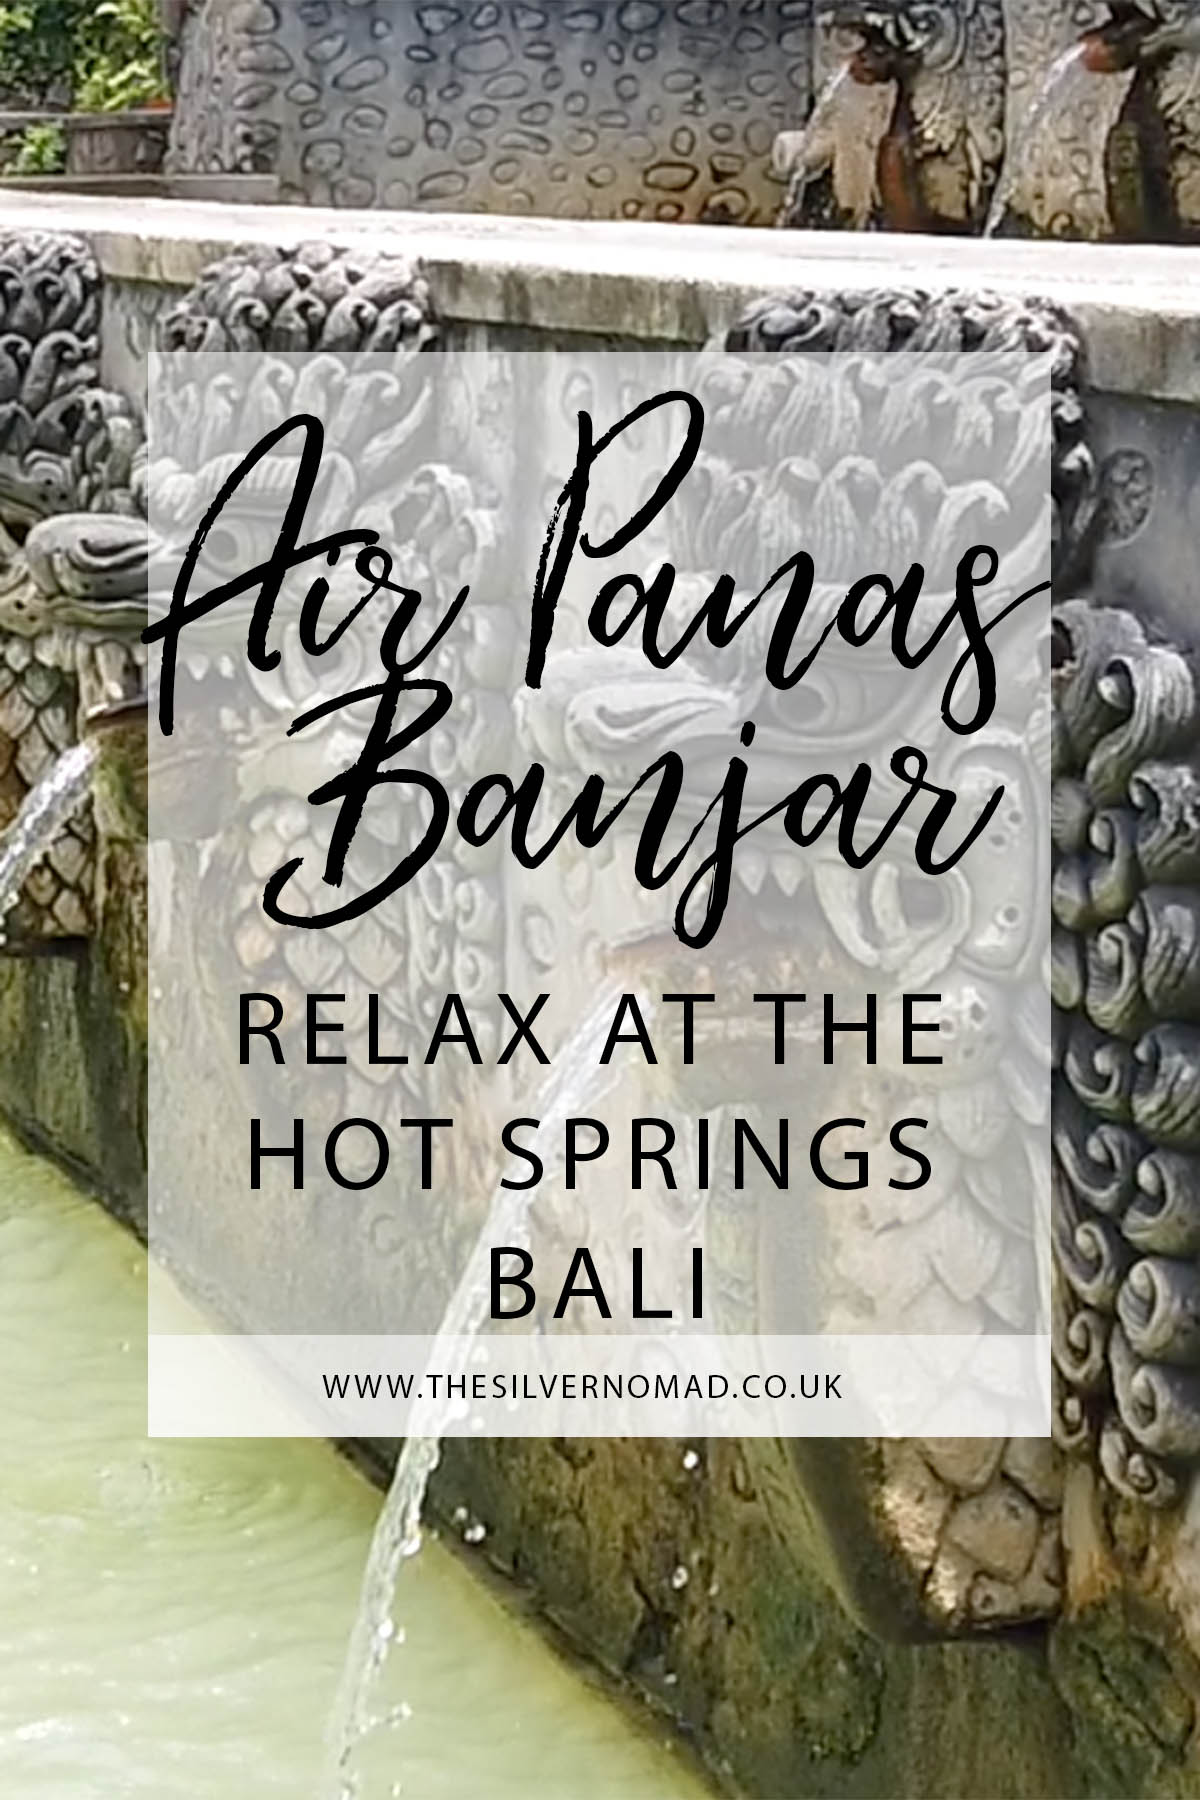 Air Panas Banjar relax at the Hot Springs Bali writing with image of stone-carved naga (dragon) spouting water